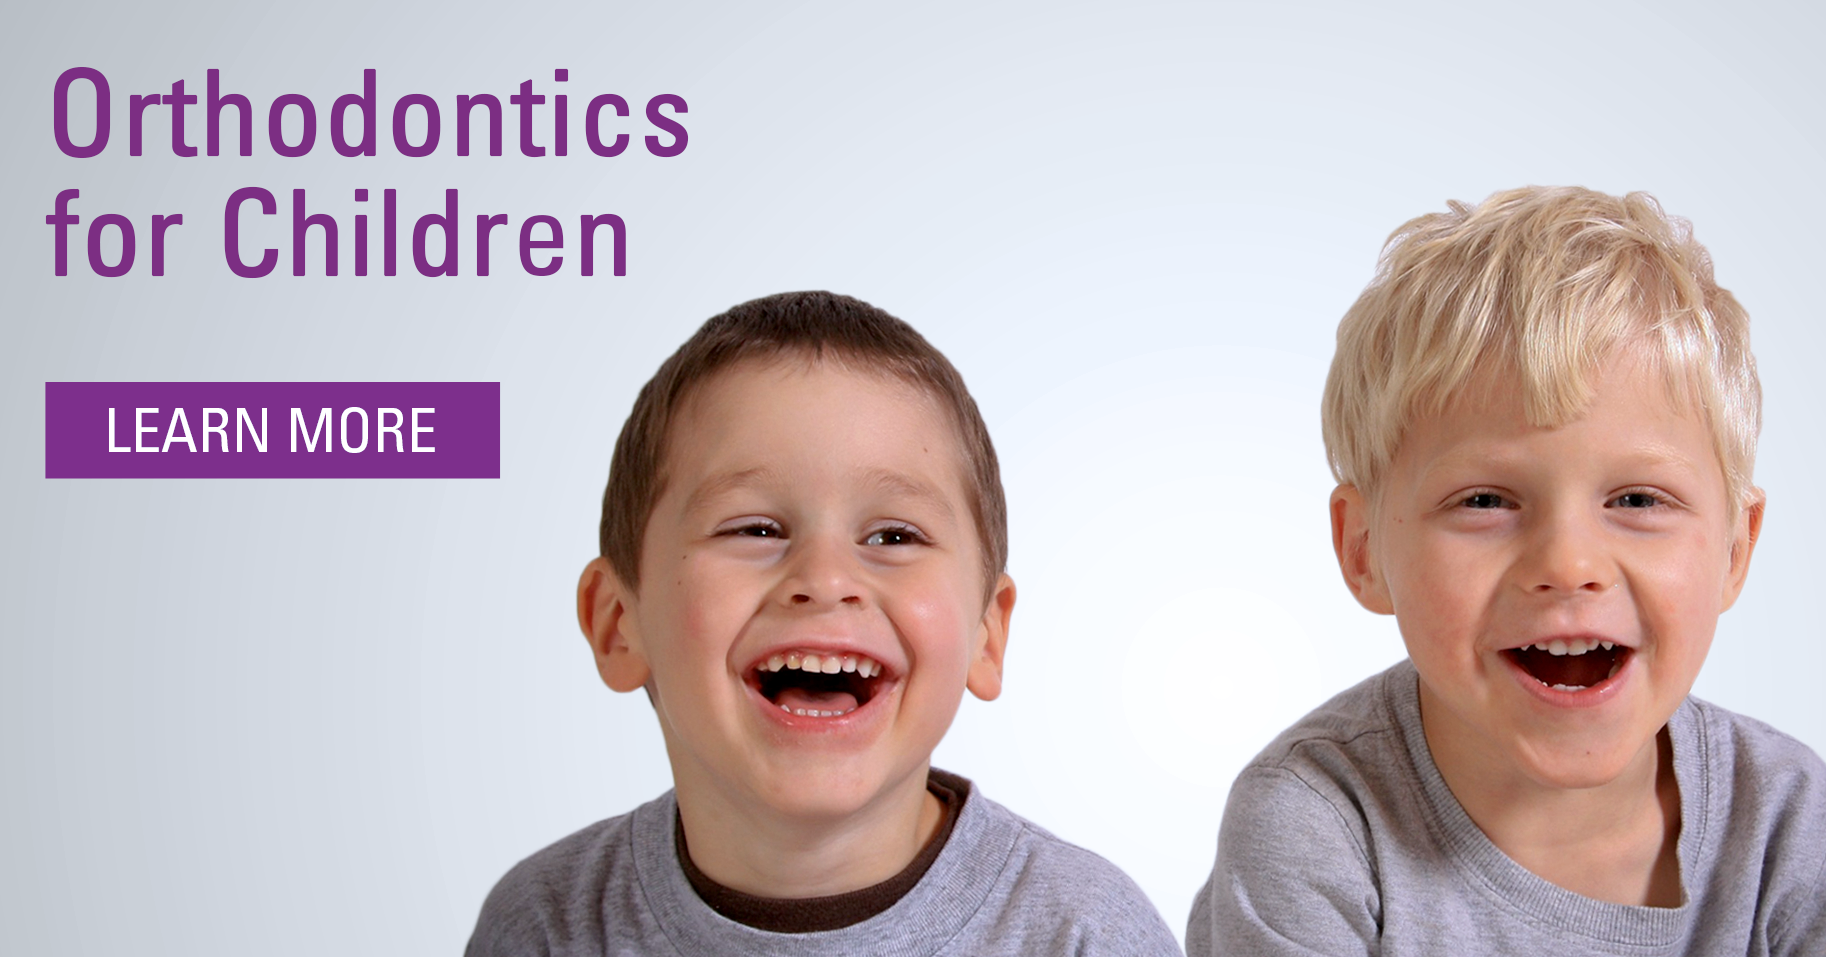 Orthodontics for Children Course Learn More